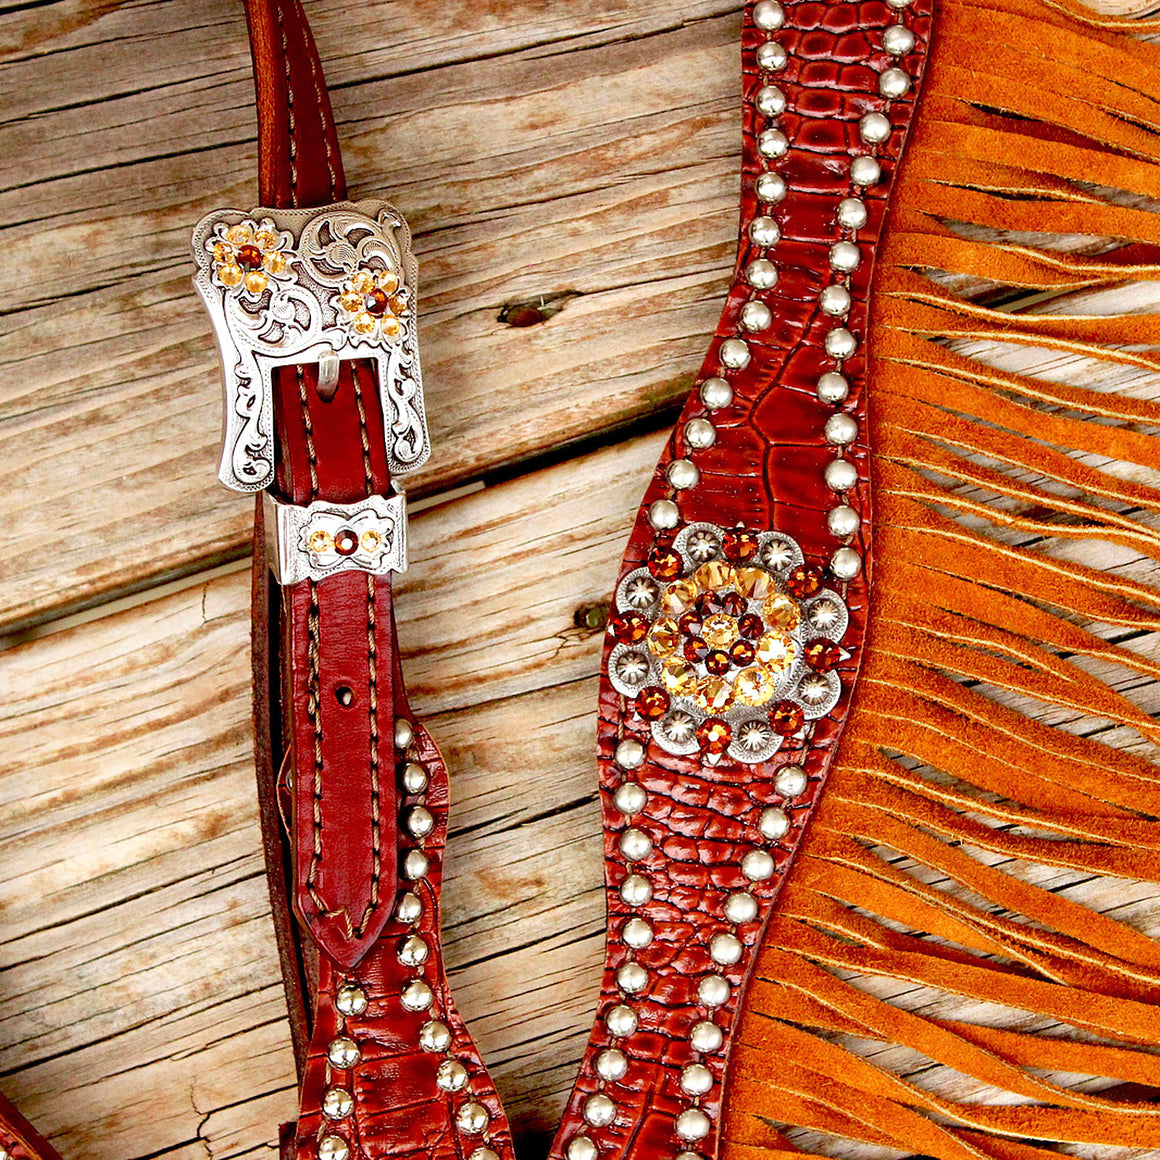 Brown Gator/Chestnut Leather Fringe Browband Tack Set w/Smoke Topaz-Lt. Topaz Crystal Rhinestone Conchos